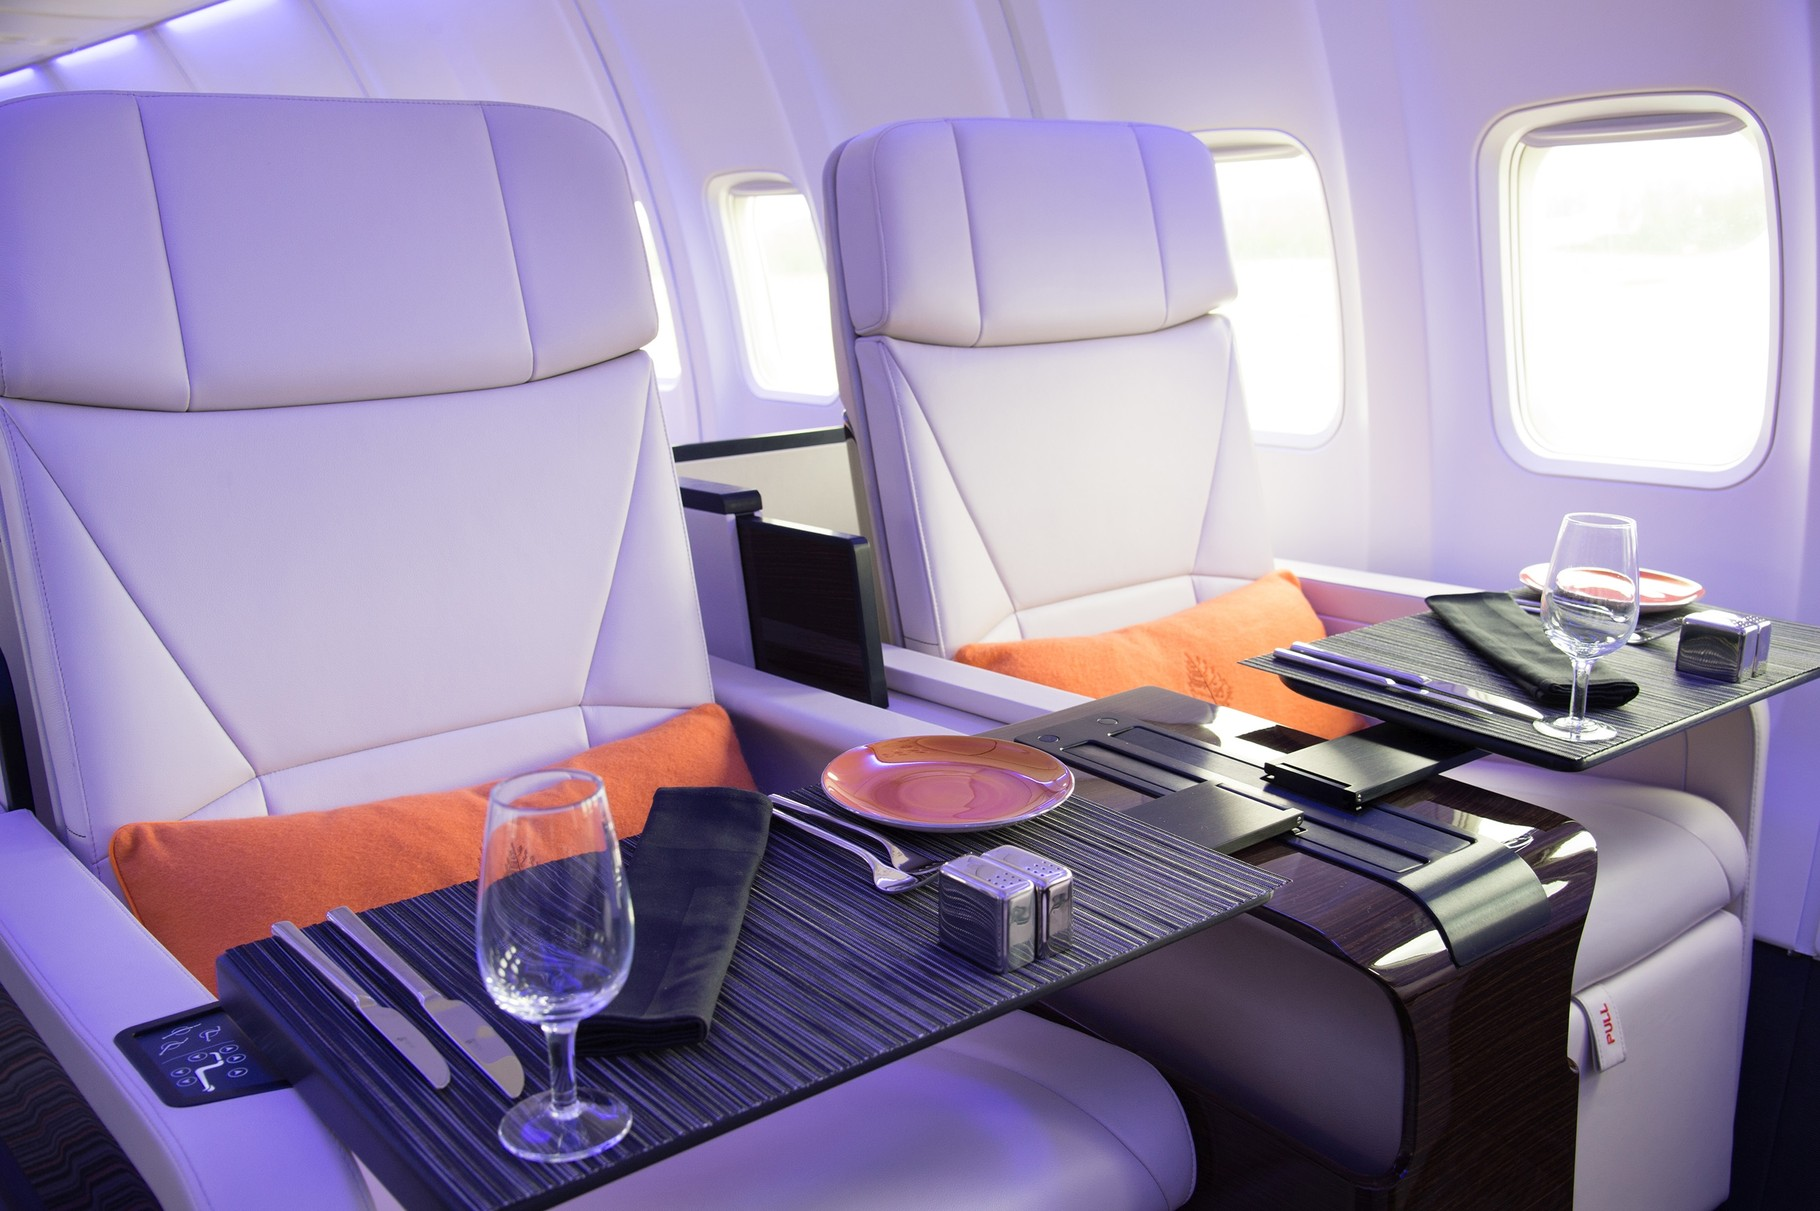 Four Seasons Private Jet Revealed: An Inside Look at the Hotel ...